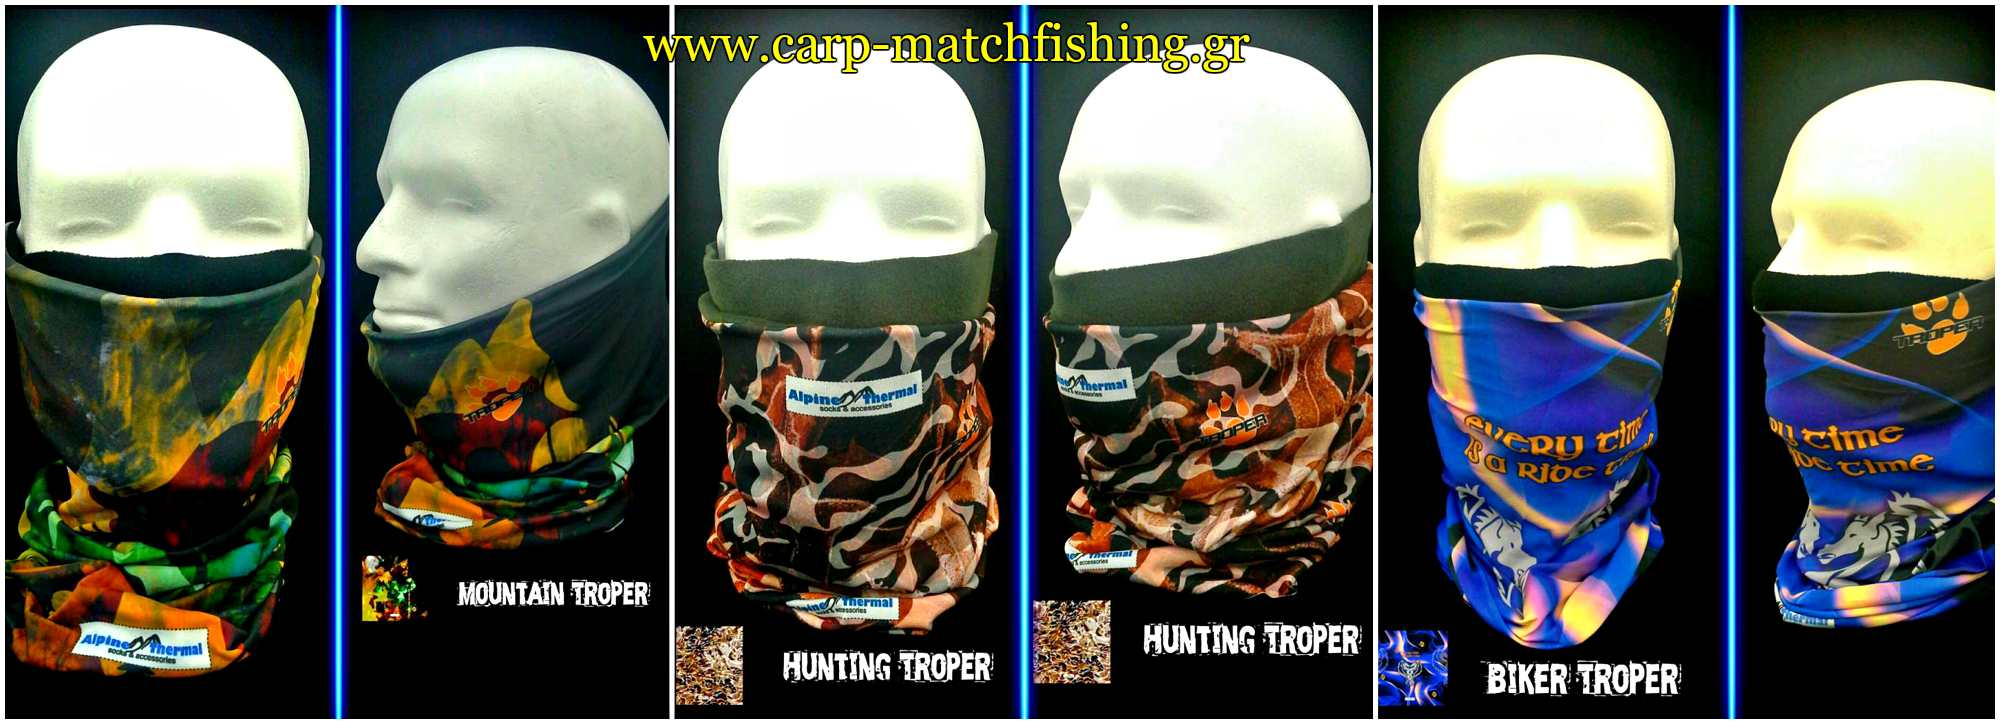 3-troper-hunting-mountain-biker-carpmatchfishing